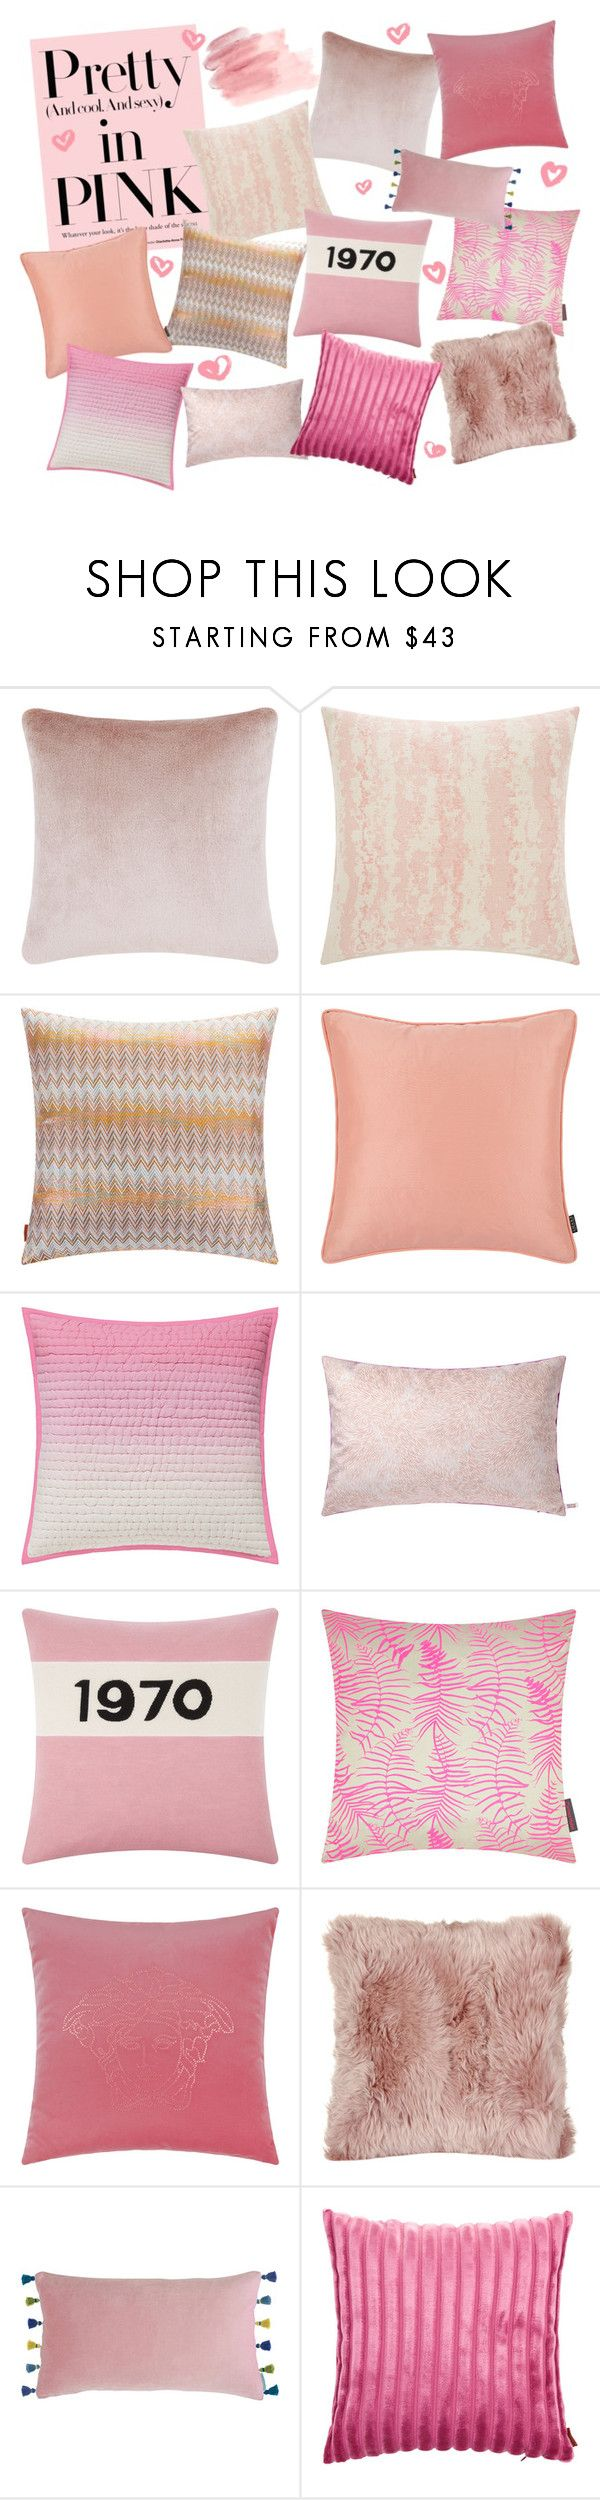 """""""Pretty in pink"""" by amara ❤ liked on Polyvore featuring interior, interiors, interior design, home, home decor, interior decorating, Tom Dixon, A by Amara, Missoni Home and Designers Guild"""